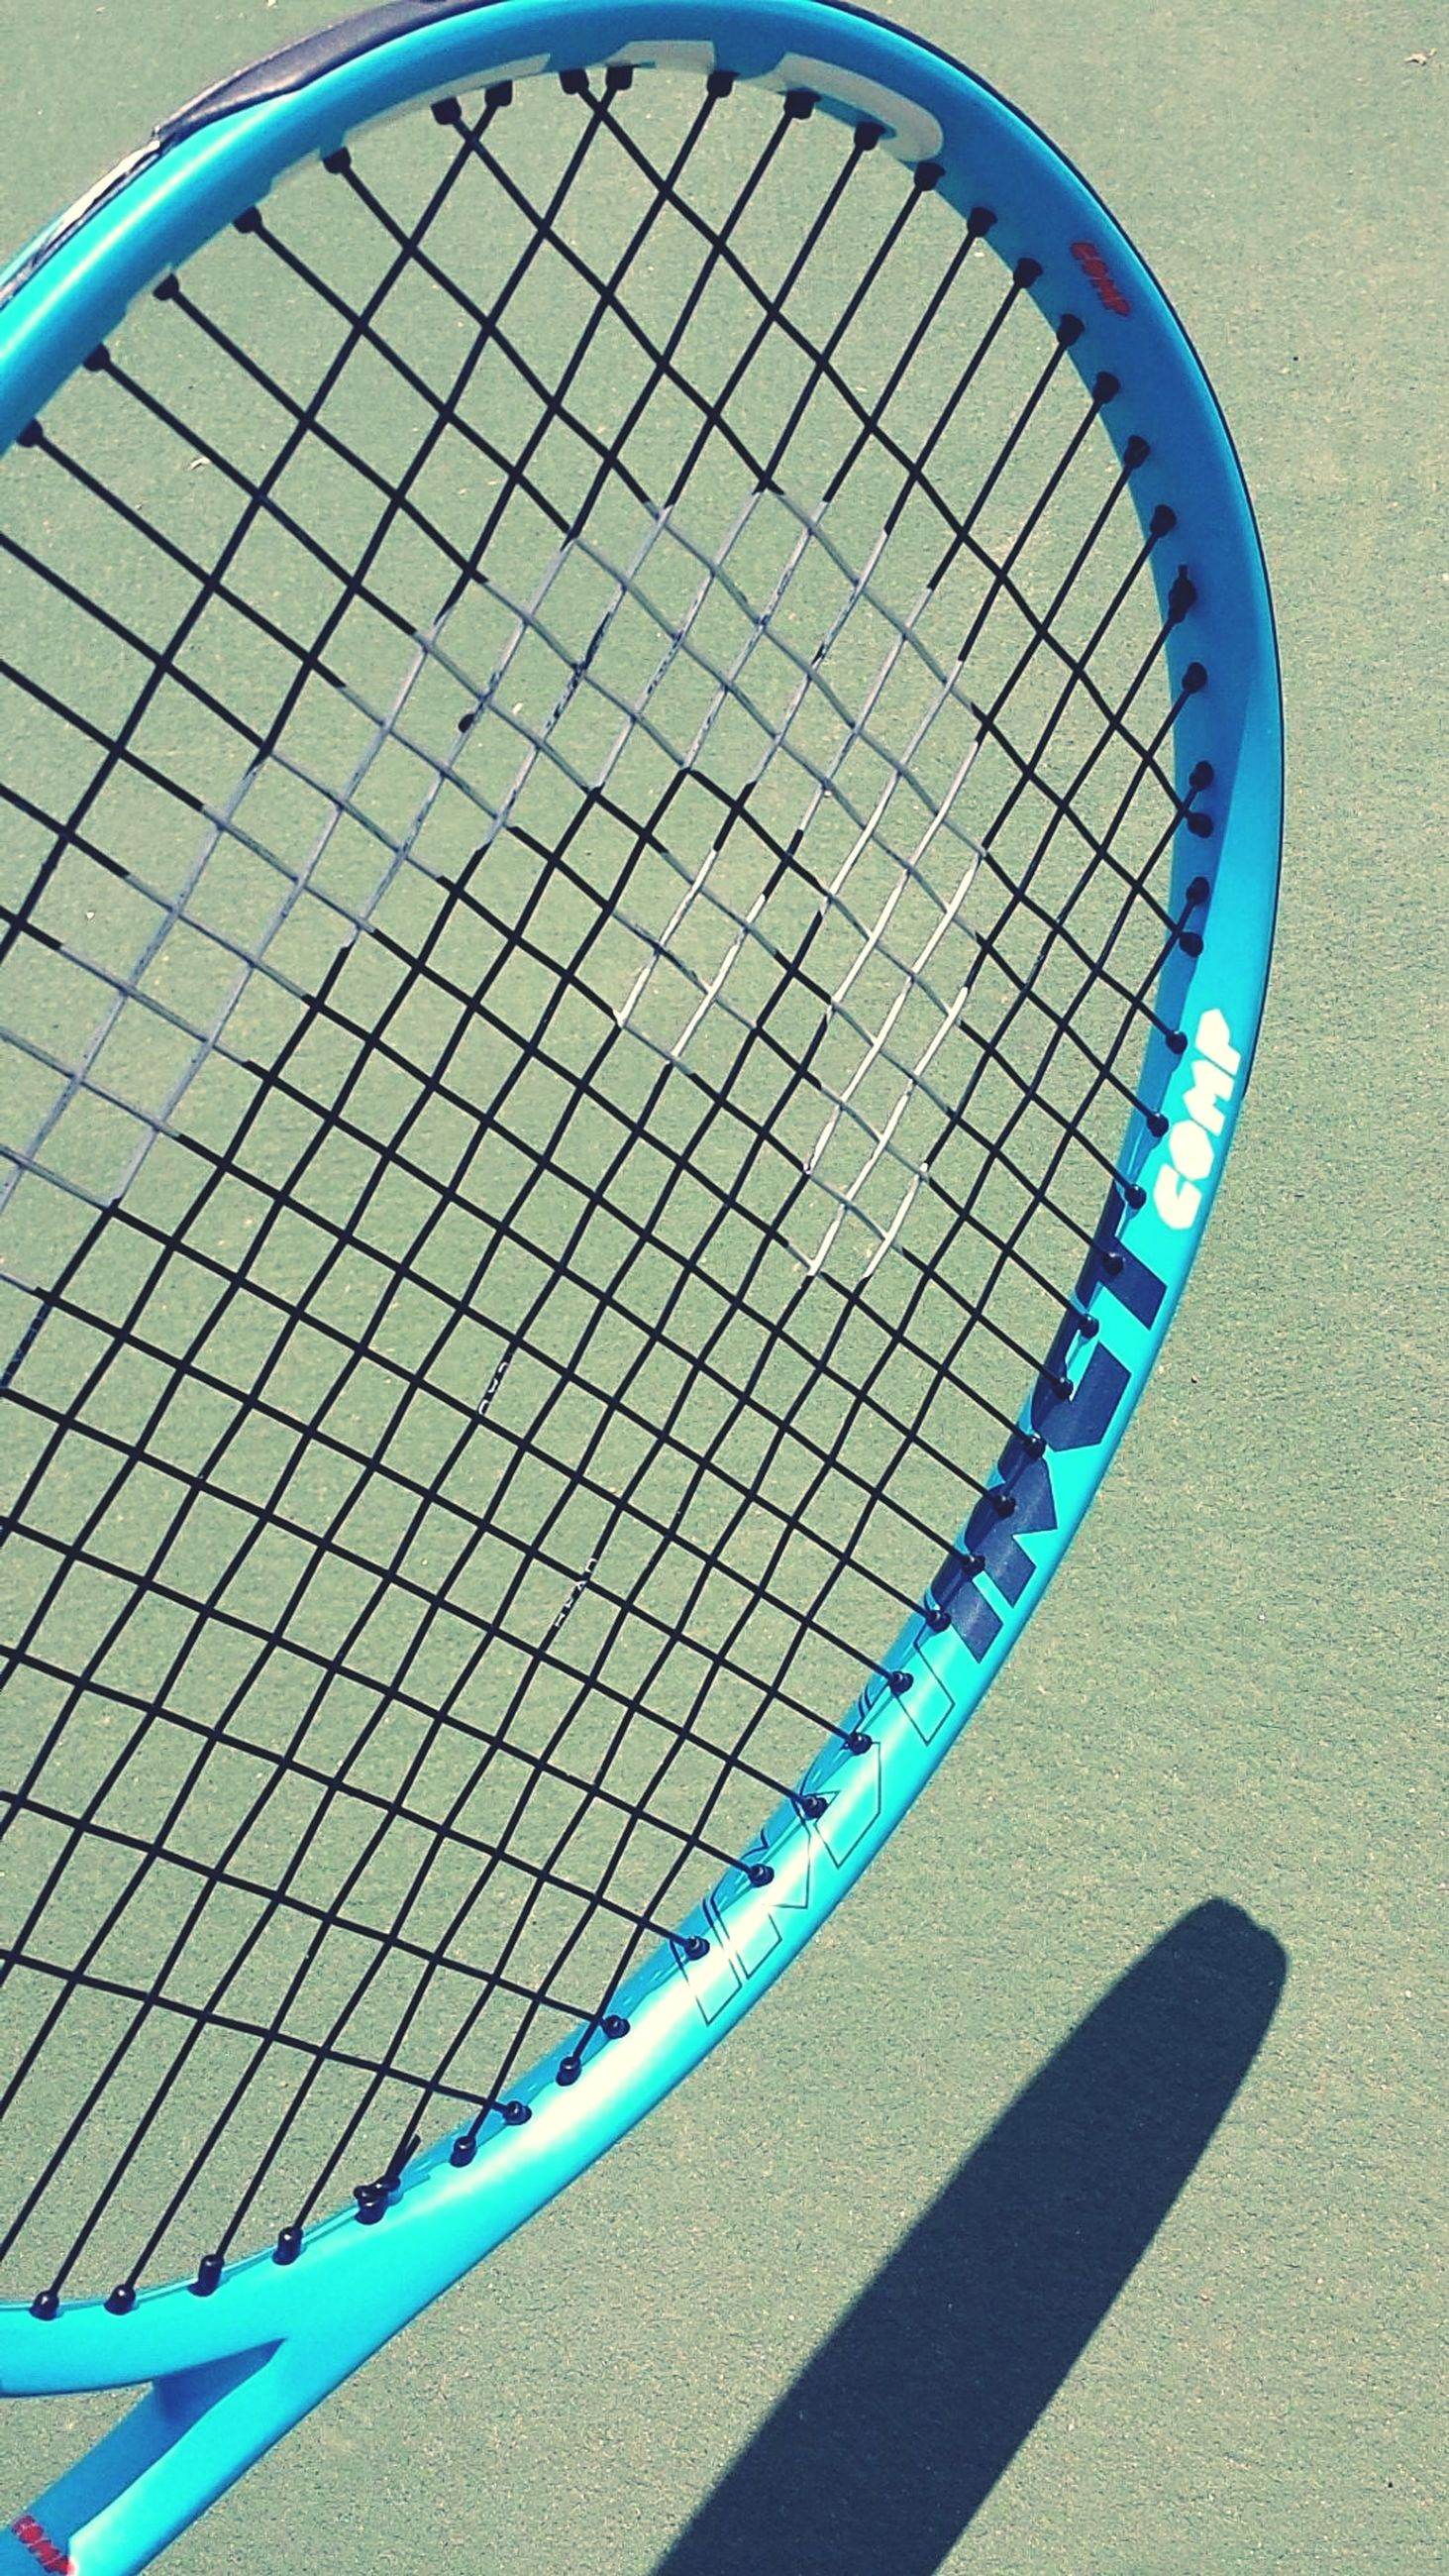 shadow, no people, sport, day, pattern, blue, sunlight, tennis, high angle view, nature, shape, sports equipment, outdoors, metal, absence, circle, tennis racket, curve, racket, swimming pool